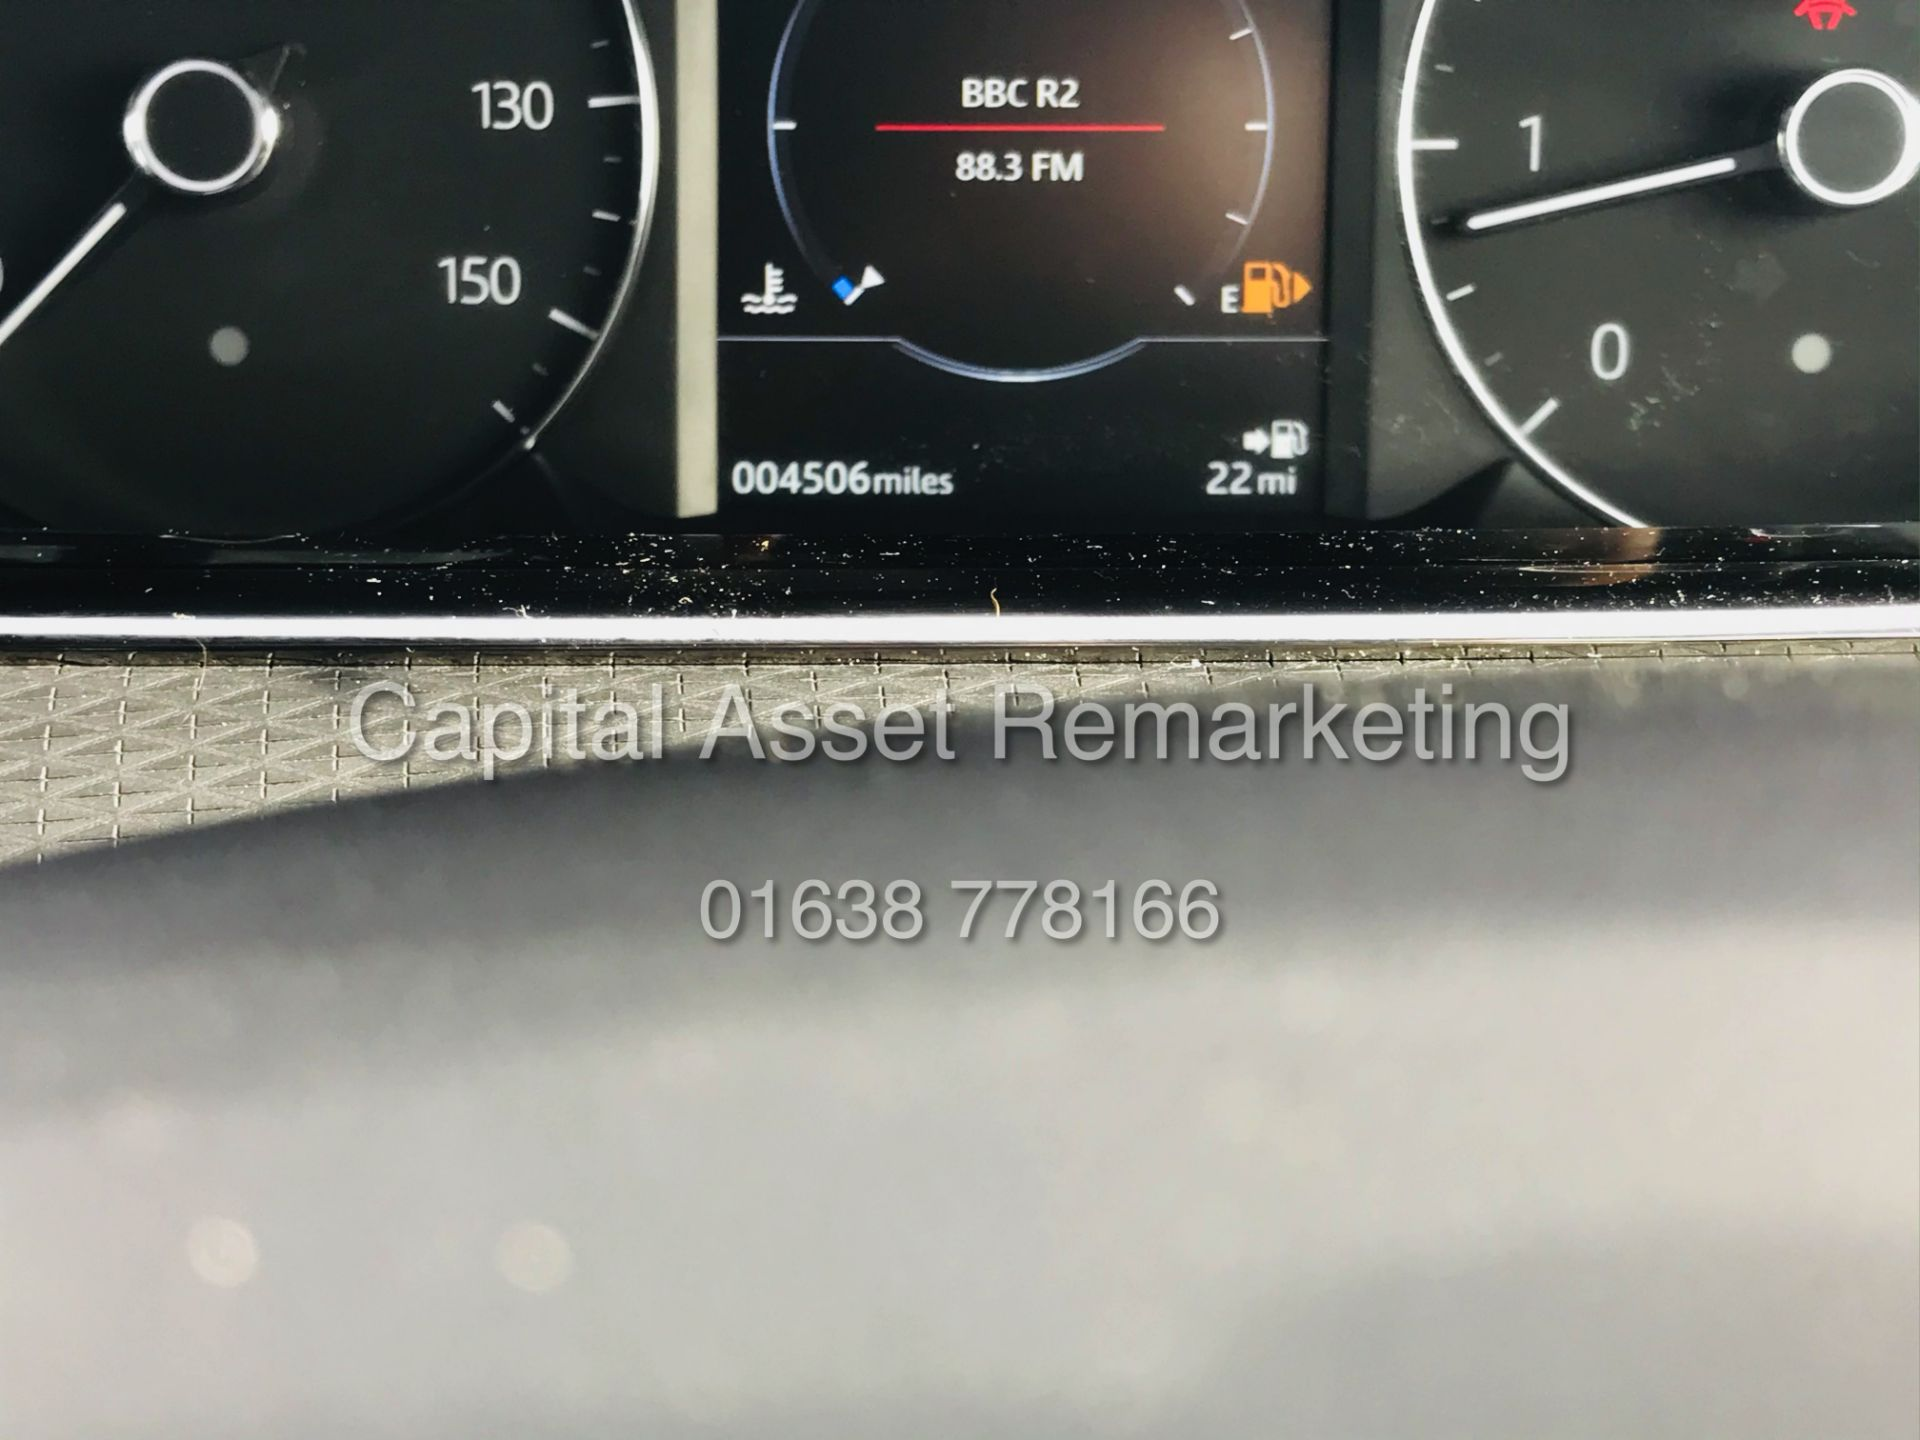 "(On Sale) RANGE ROVER EVOQUE R-DYNAMIC 2.0 D150 ""BLACK EDITION"" (2020) GREAT SPEC - ONLY 4500 MILES - Image 13 of 26"